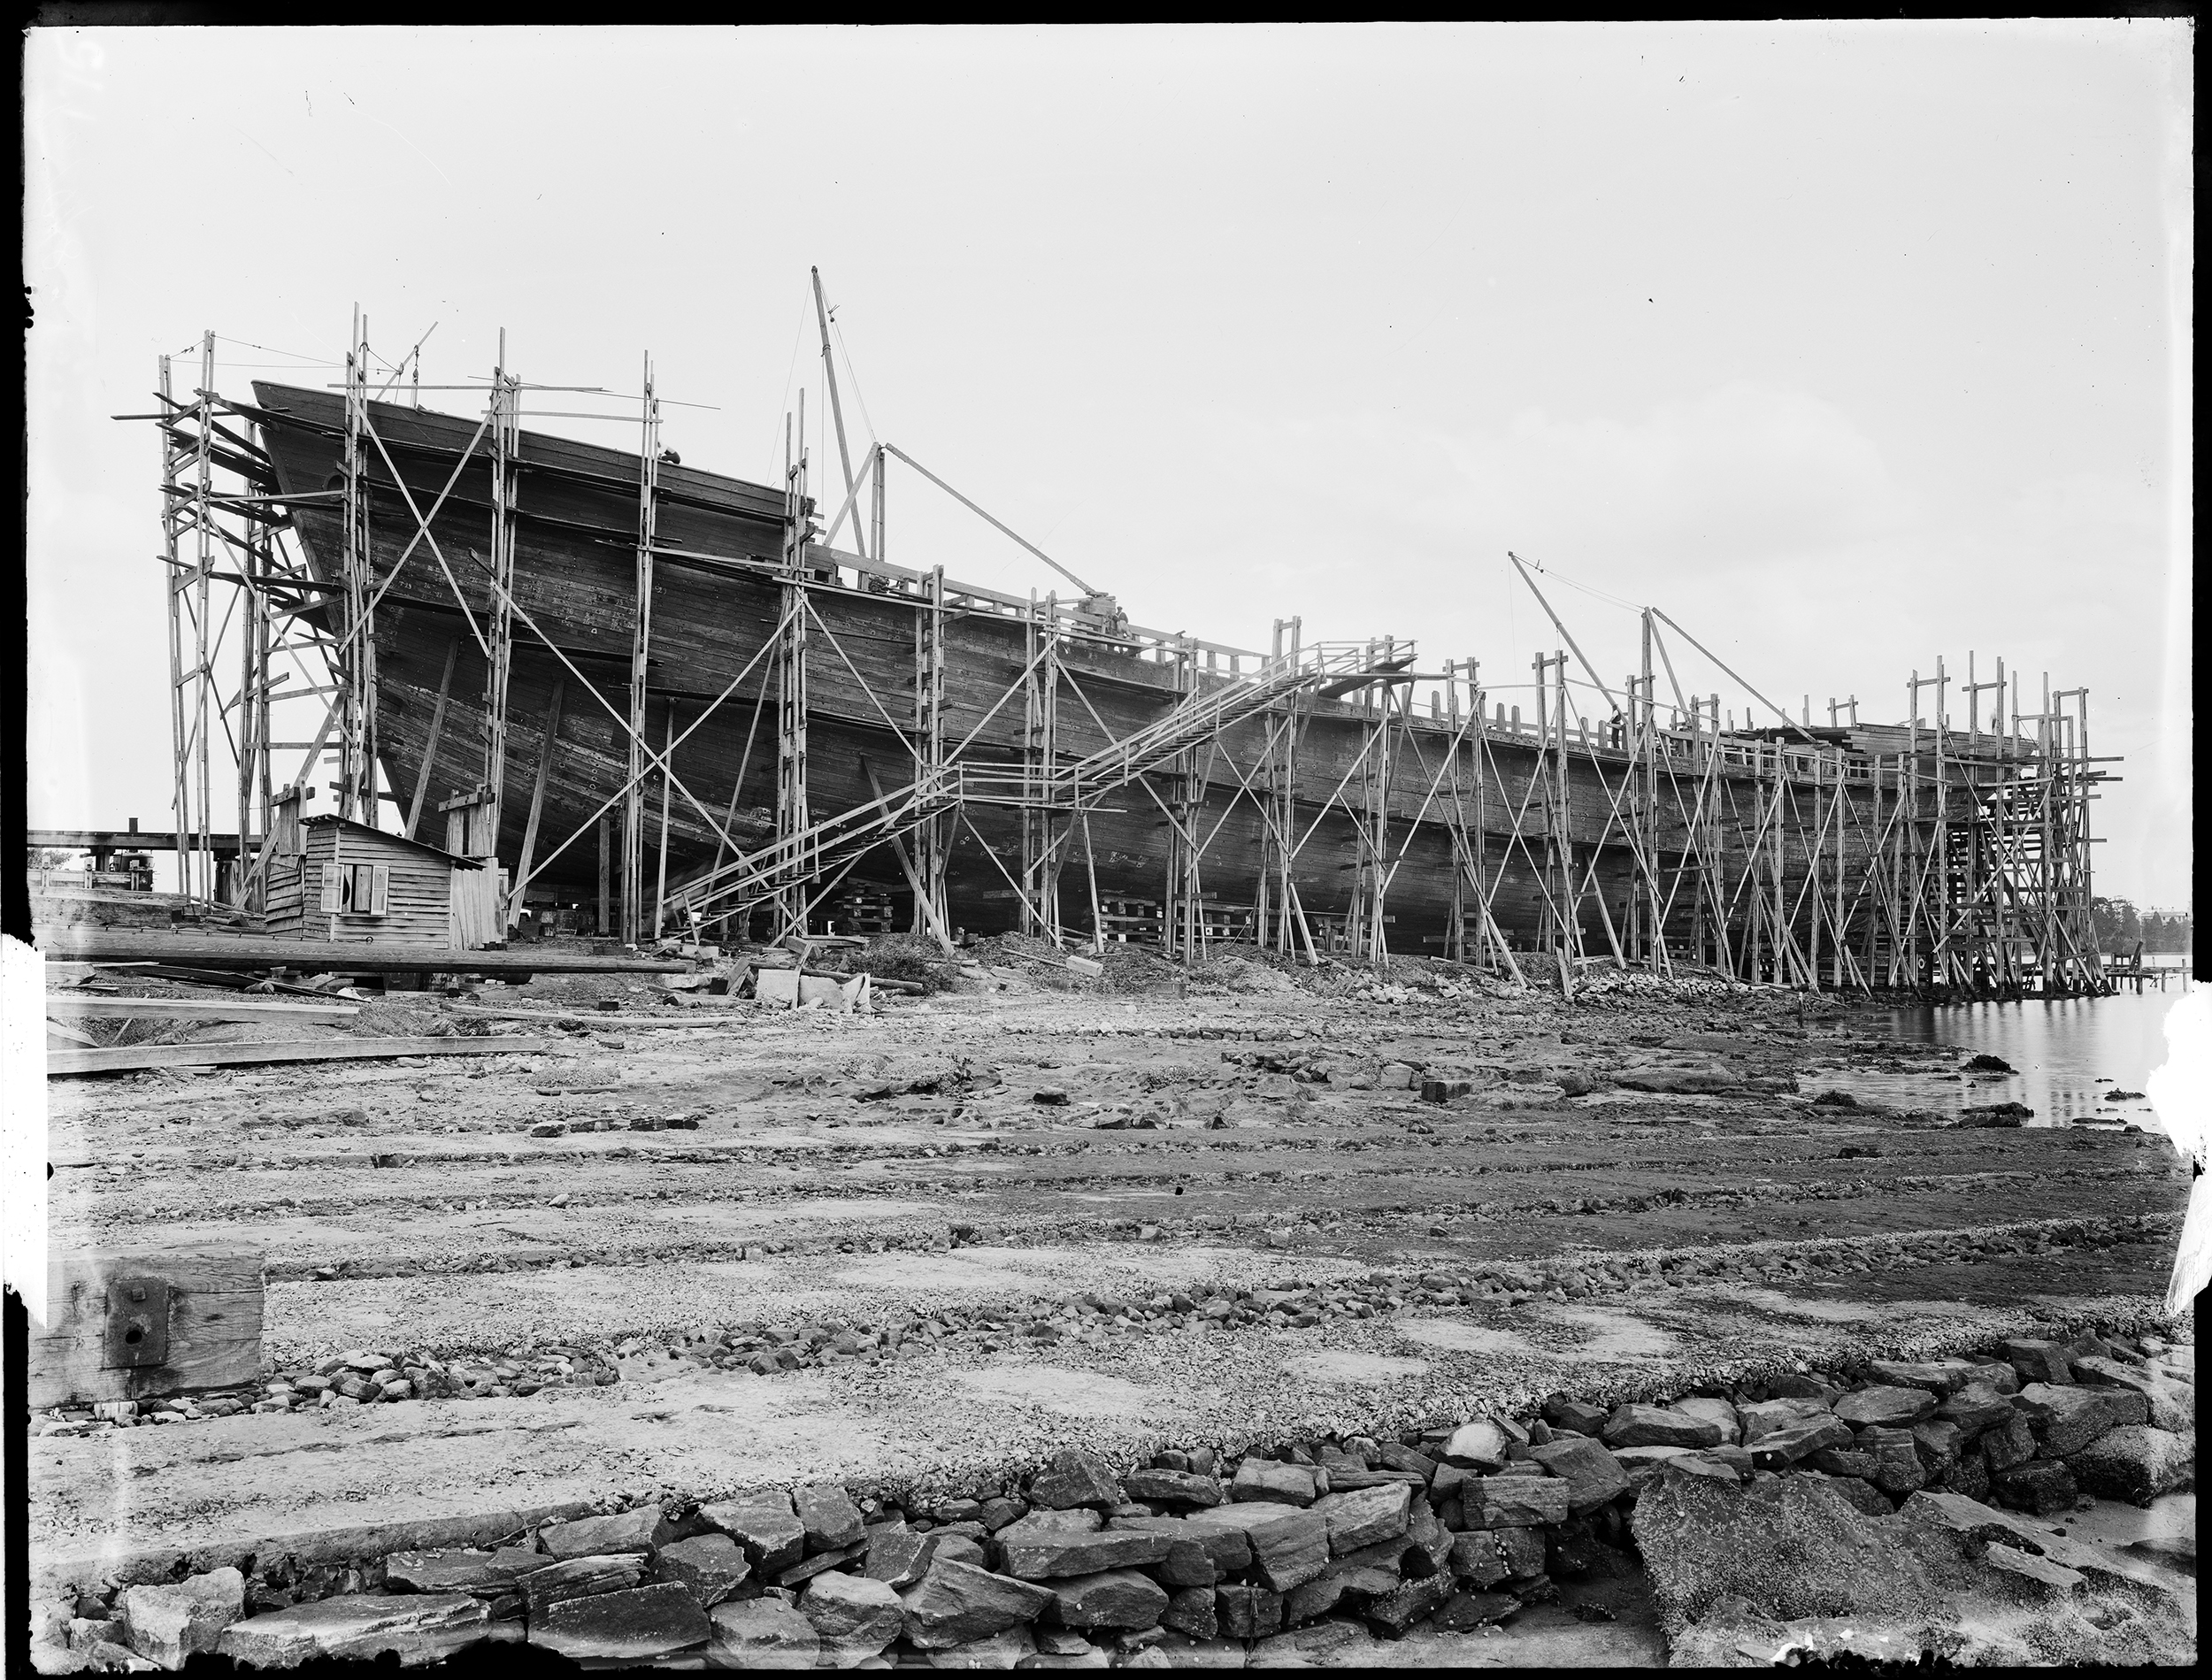 'Braeside' or 'Burnside' under construction, Kidman & Mayoh, shipbuilders, Kissing Point Park, Ryde, Sydney, c. 1920, Arthur Ernest Foster